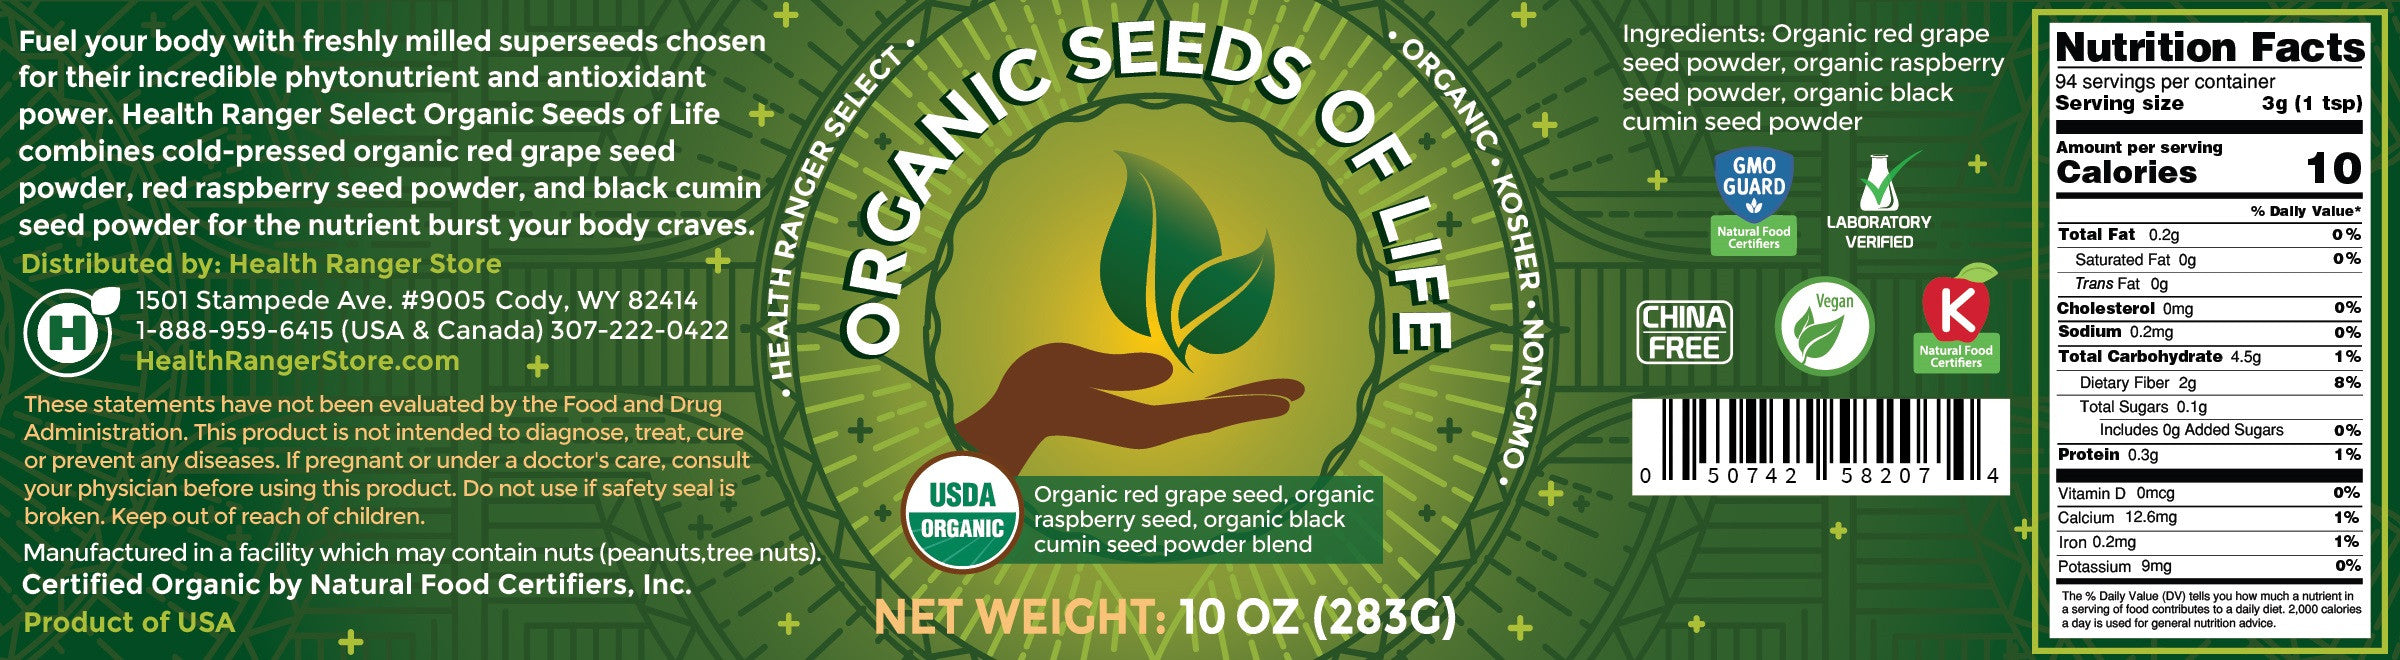 Organic Seeds of Life - Cold Pressed - 10oz (283g)